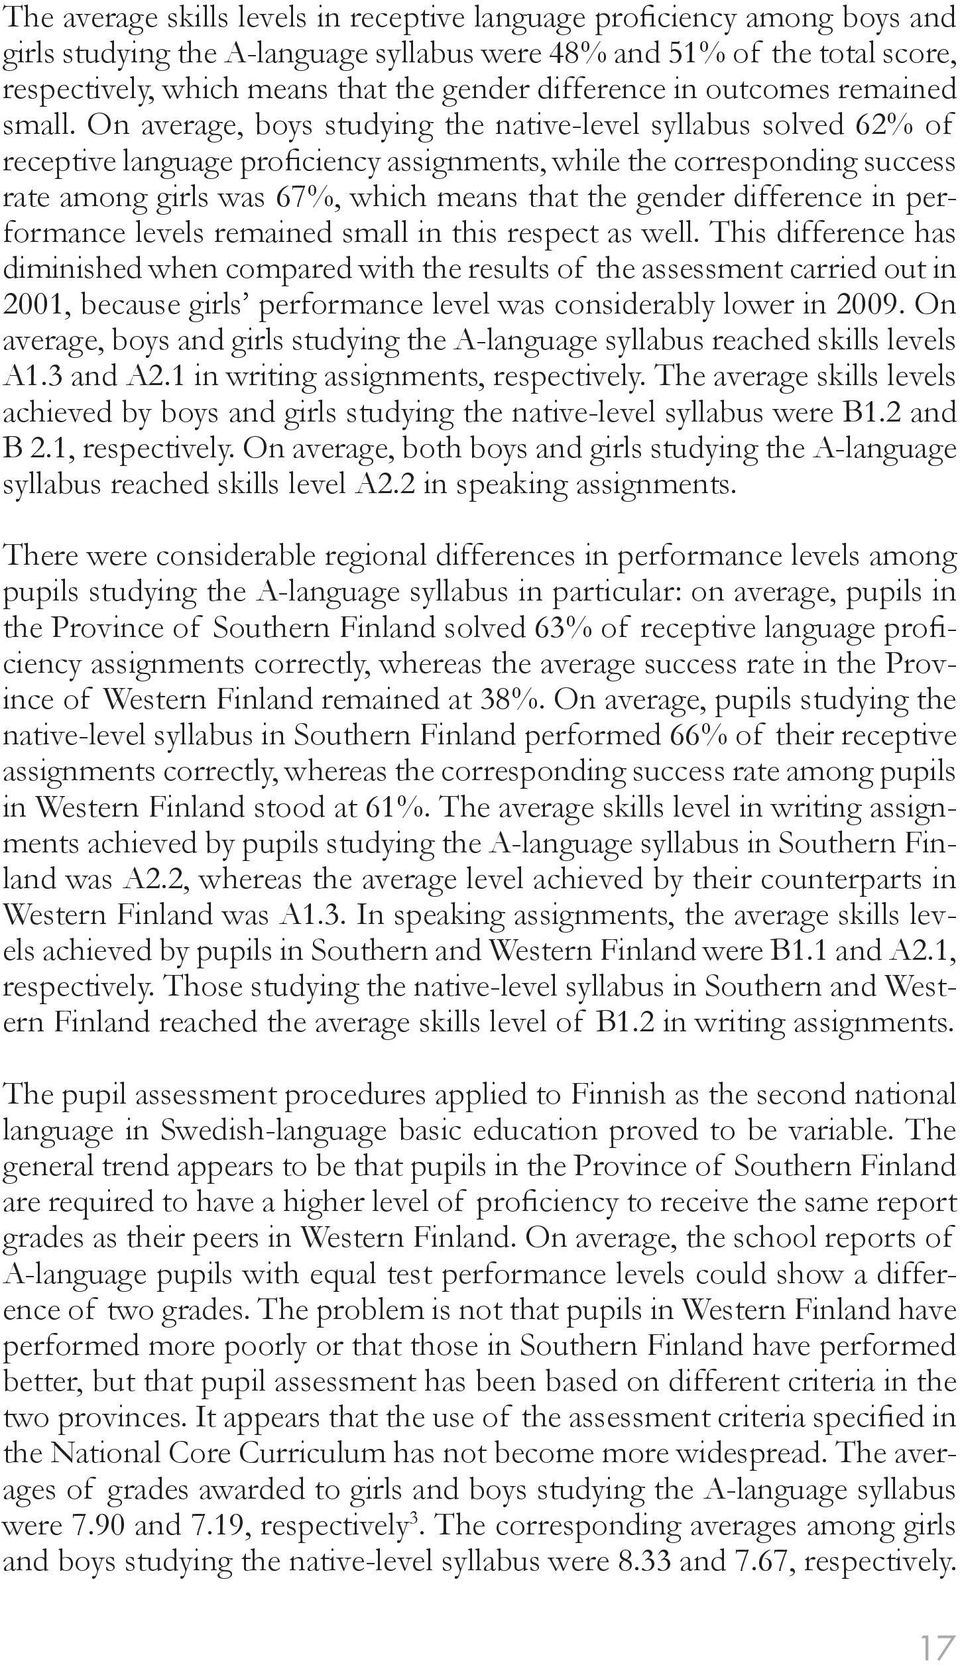 On average, boys studying the native-level syllabus solved 62% of receptive language proficiency assignments, while the corresponding success rate among girls was 67%, which means that the gender